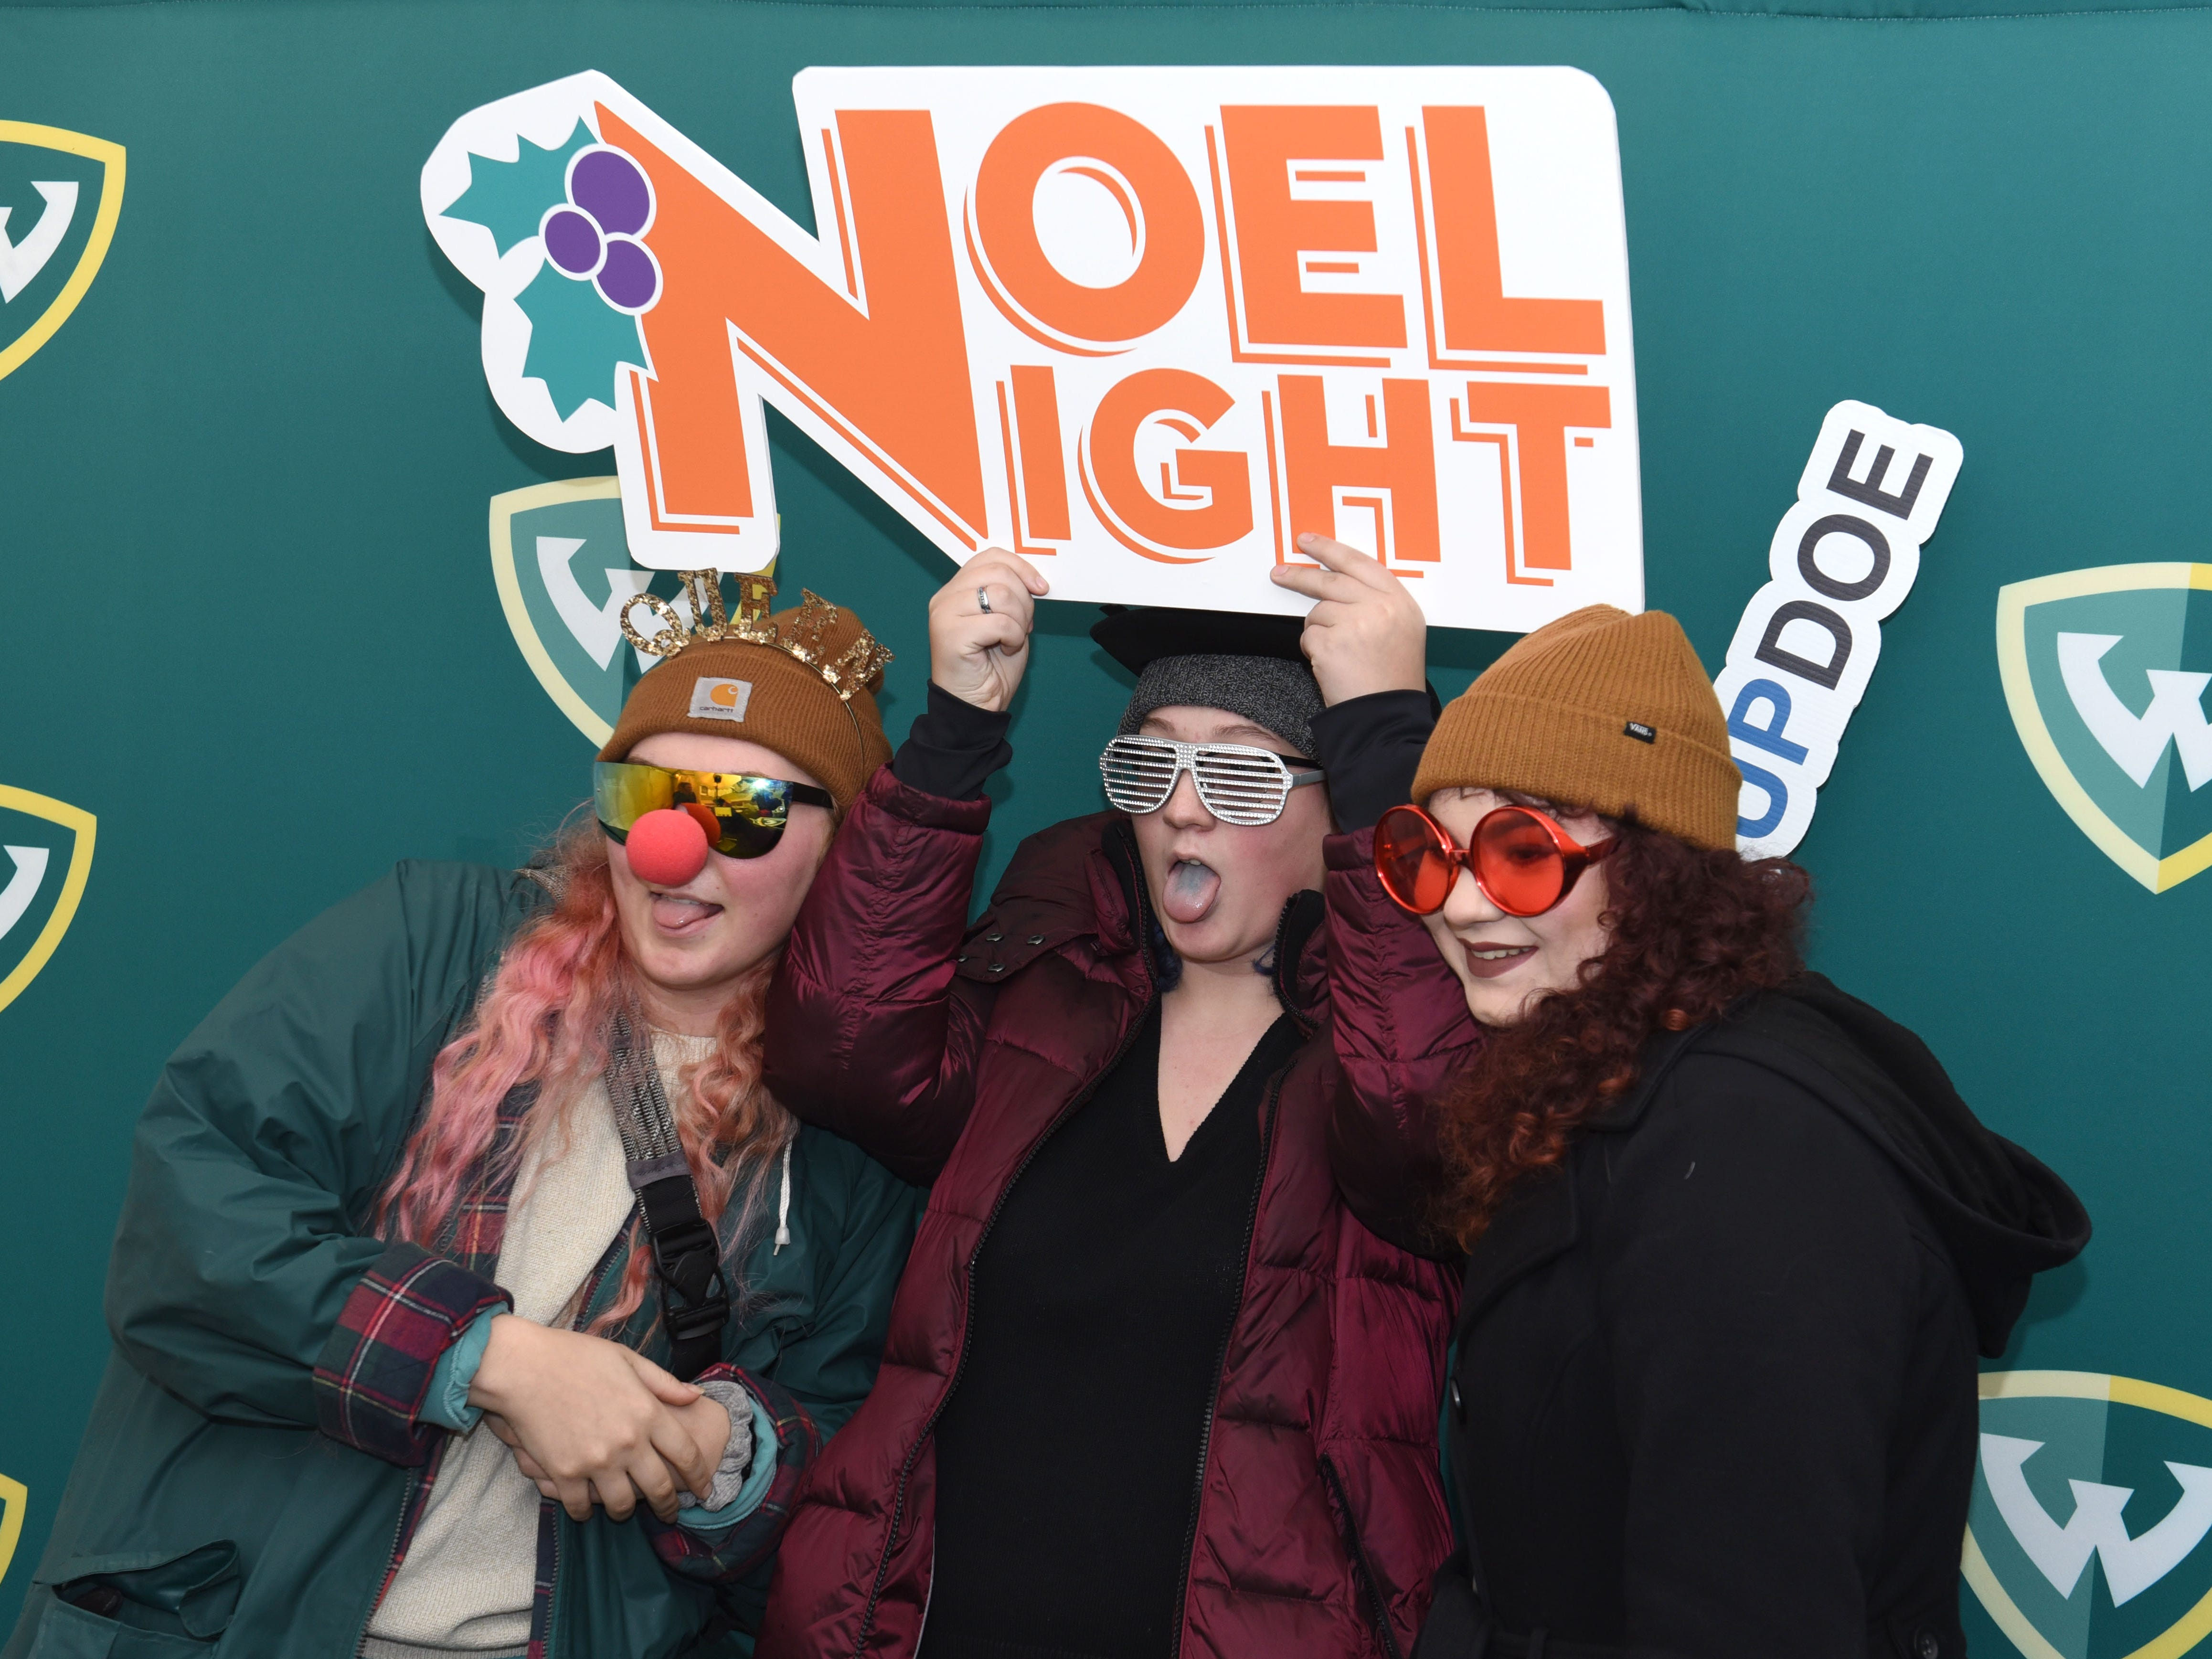 Kiera Molloy (from left) along with her sisters Riane Molloy and Meryn Molloy, of Farmington Hills, pose for a photograph at the Winter Art and Retail Market during Noel Night in Detroit on Saturday, December 1, 2018.